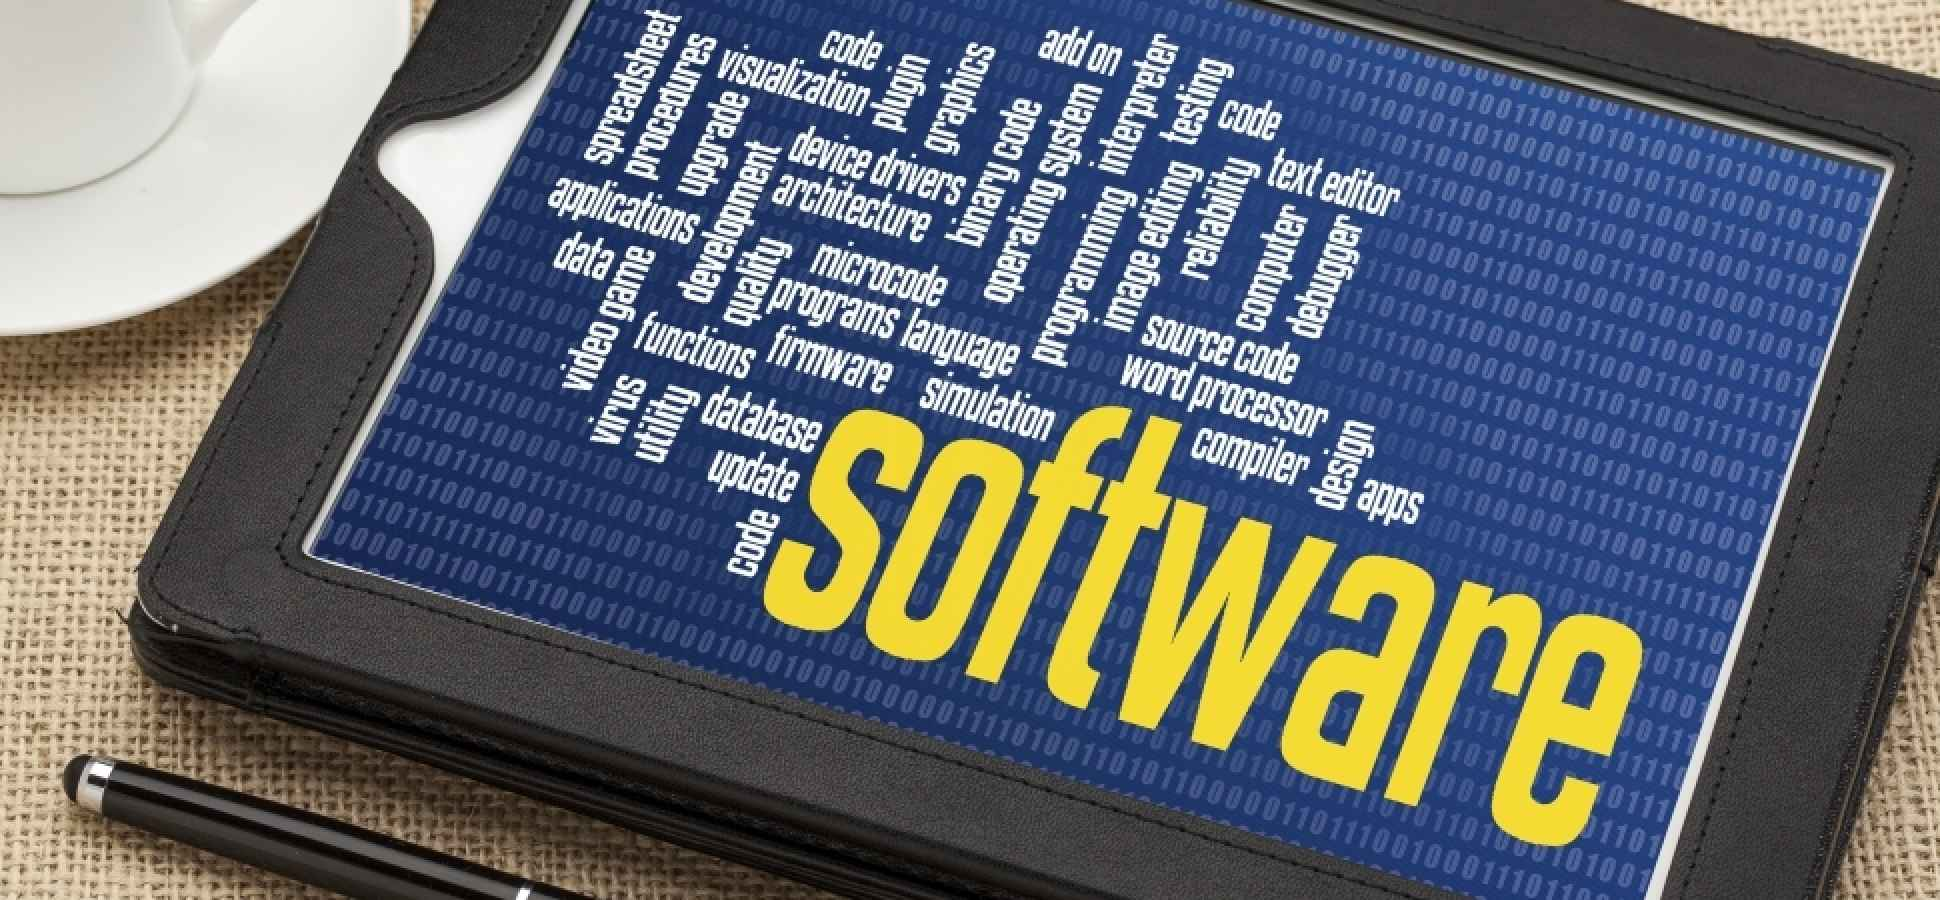 6 Software Applications that Will Make Startup Life Easier